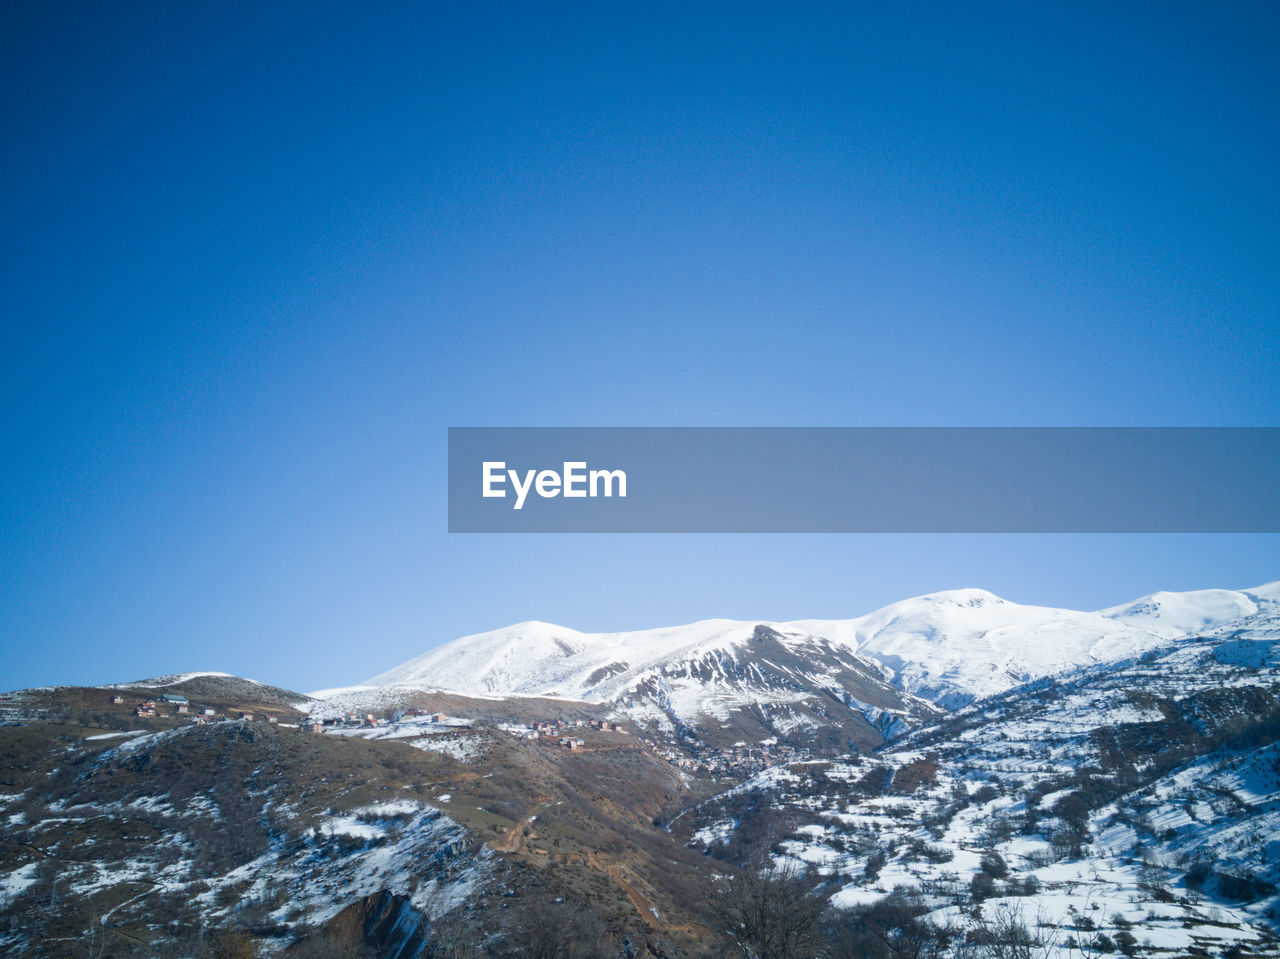 sky, snow, mountain, winter, cold temperature, blue, clear sky, beauty in nature, copy space, scenics - nature, snowcapped mountain, tranquility, tranquil scene, nature, mountain range, day, environment, no people, non-urban scene, mountain peak, outdoors